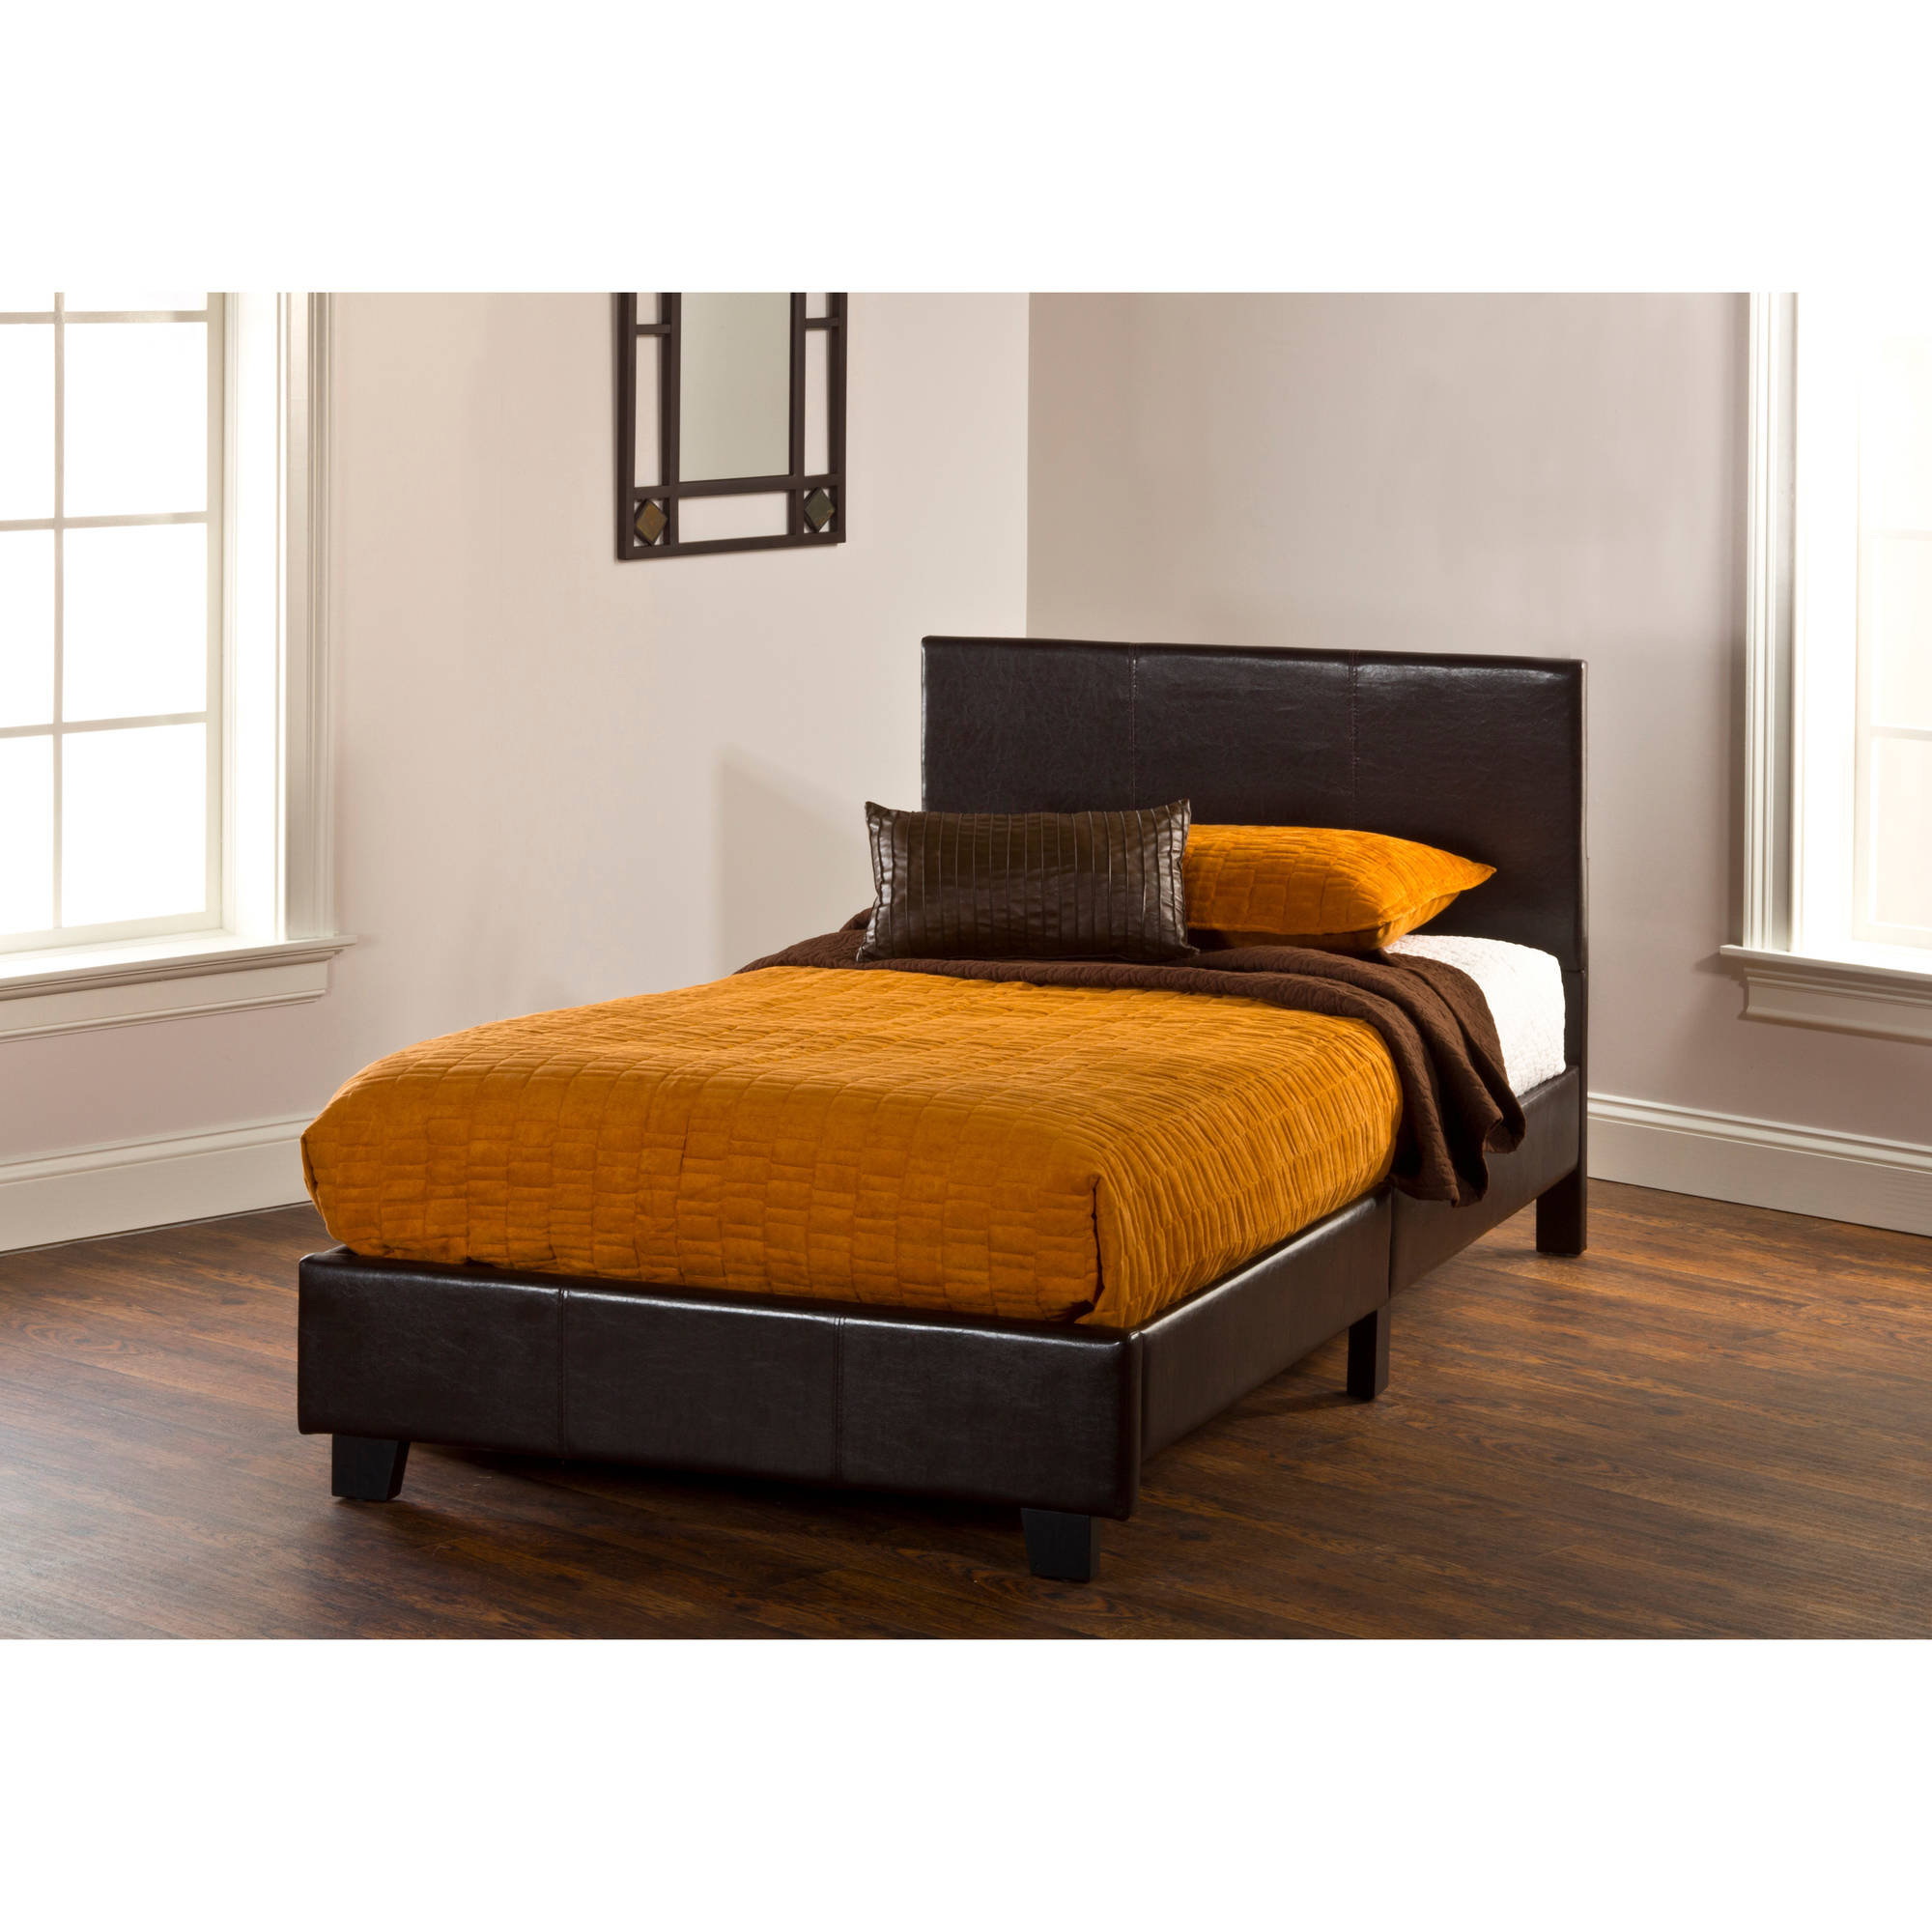 Hillsdale Springfield Bed in a Box Twin Bed in Brown Faux Leather by Hillsdale Furniture